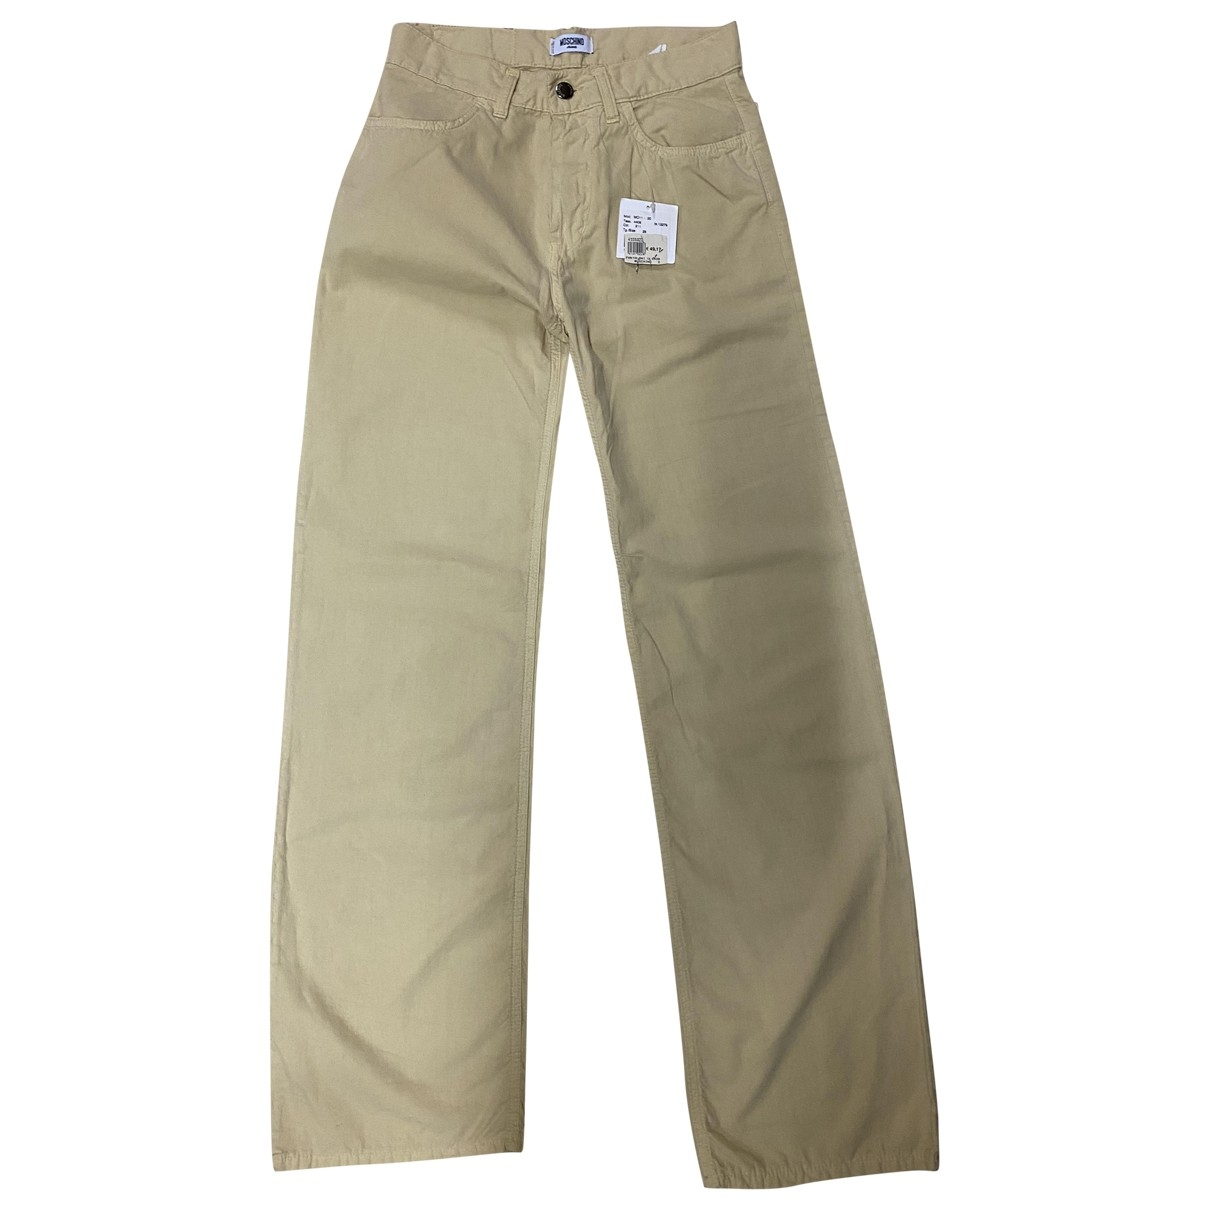 Moschino \N Beige Cotton Trousers for Men 28 UK - US